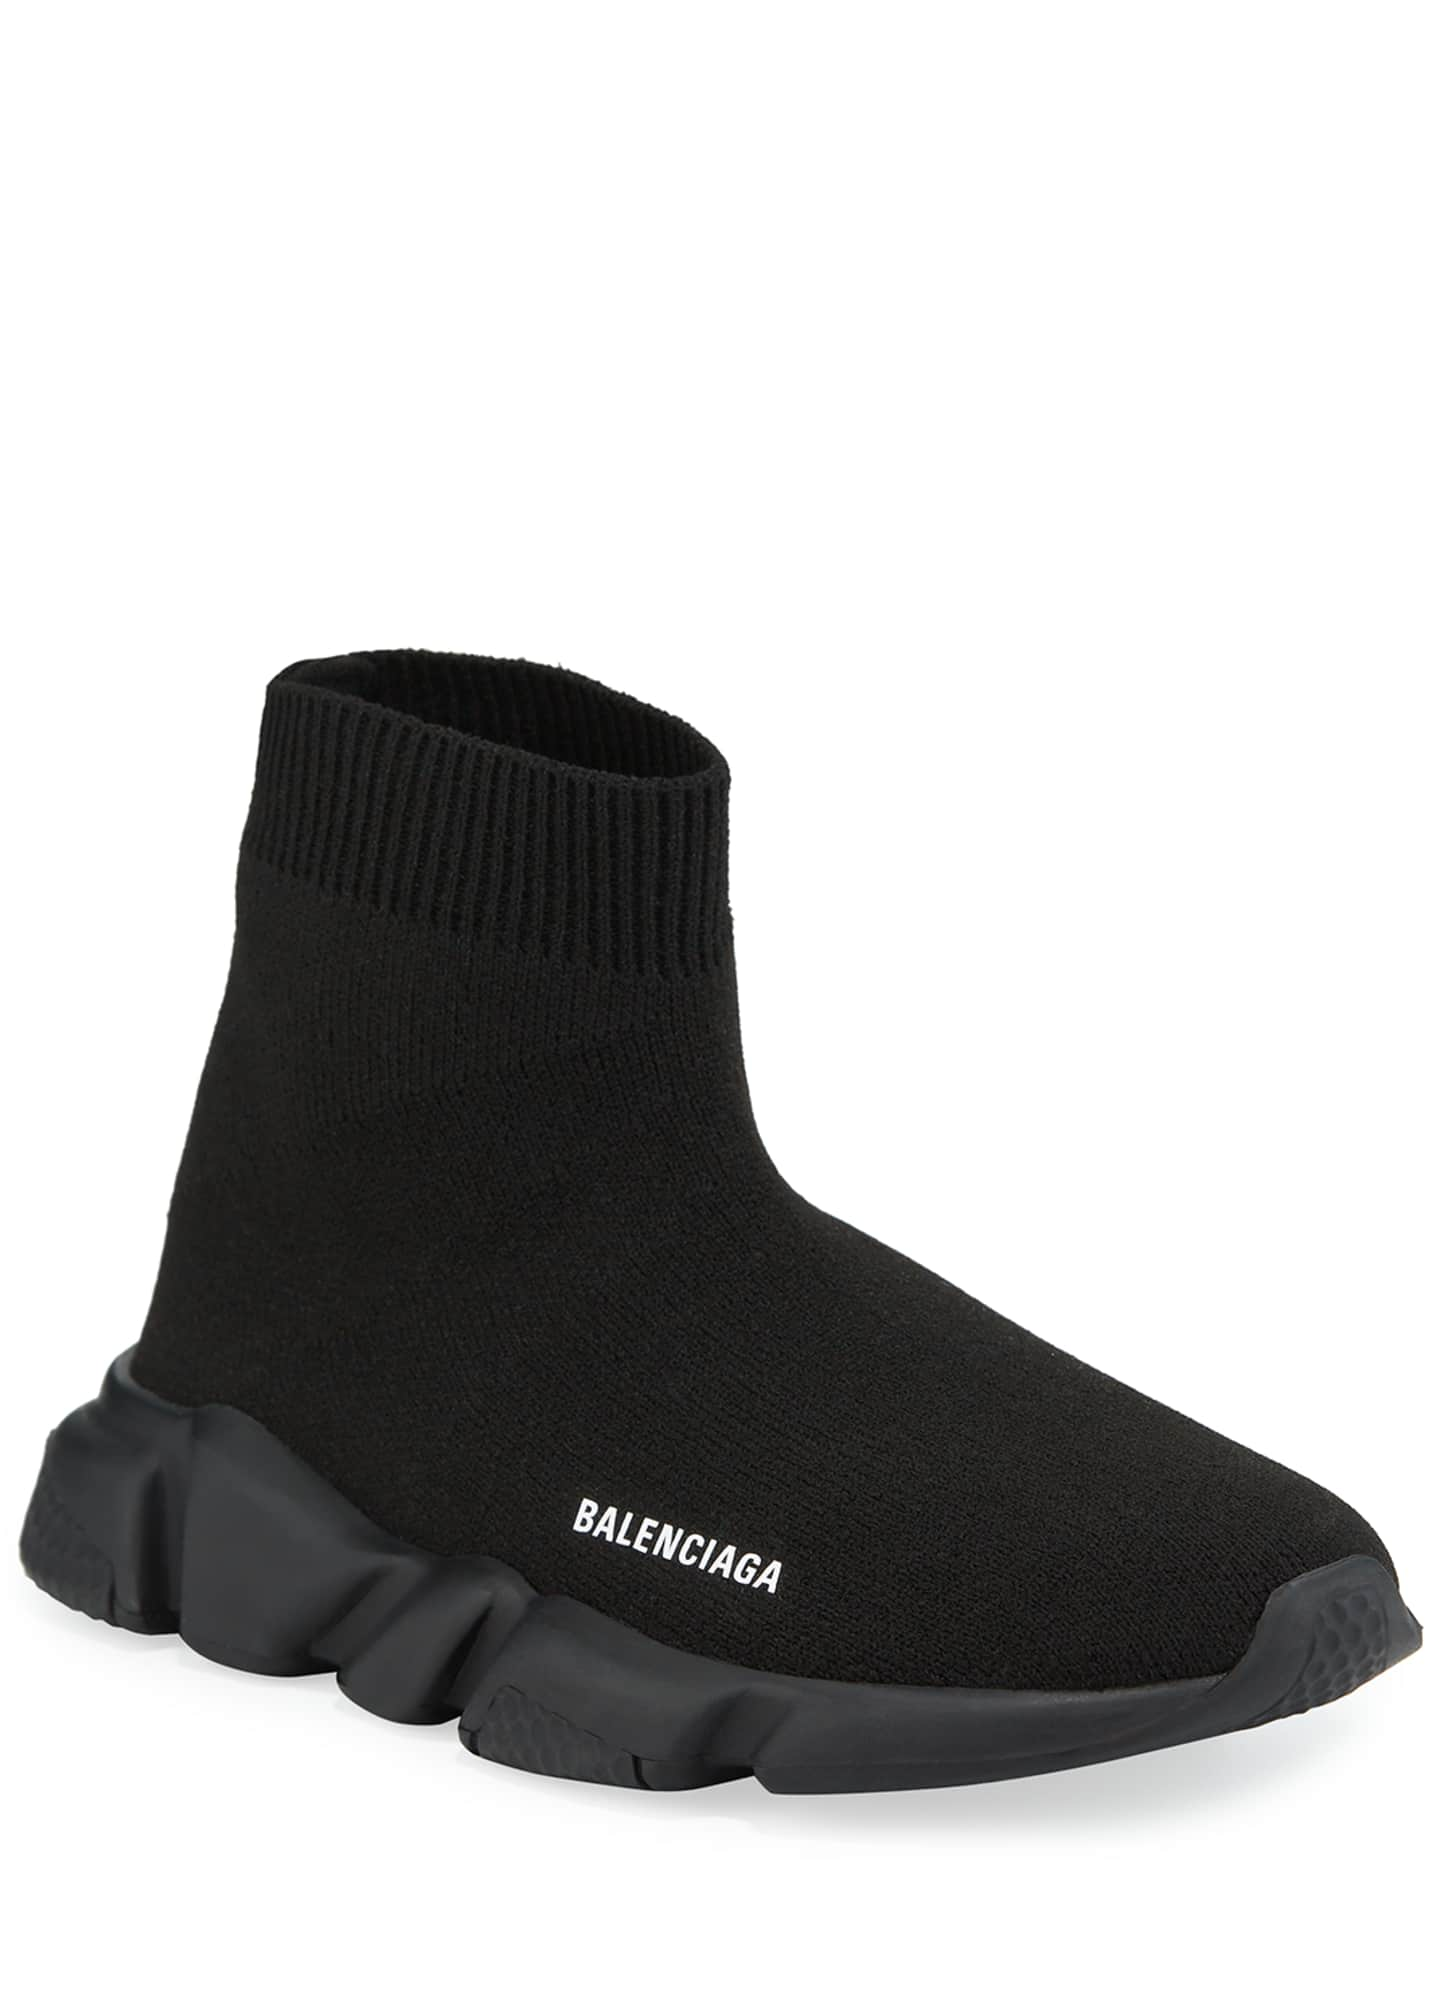 Balenciaga Speed Low-Top Trainer Sock Sneakers, Toddler/Kids